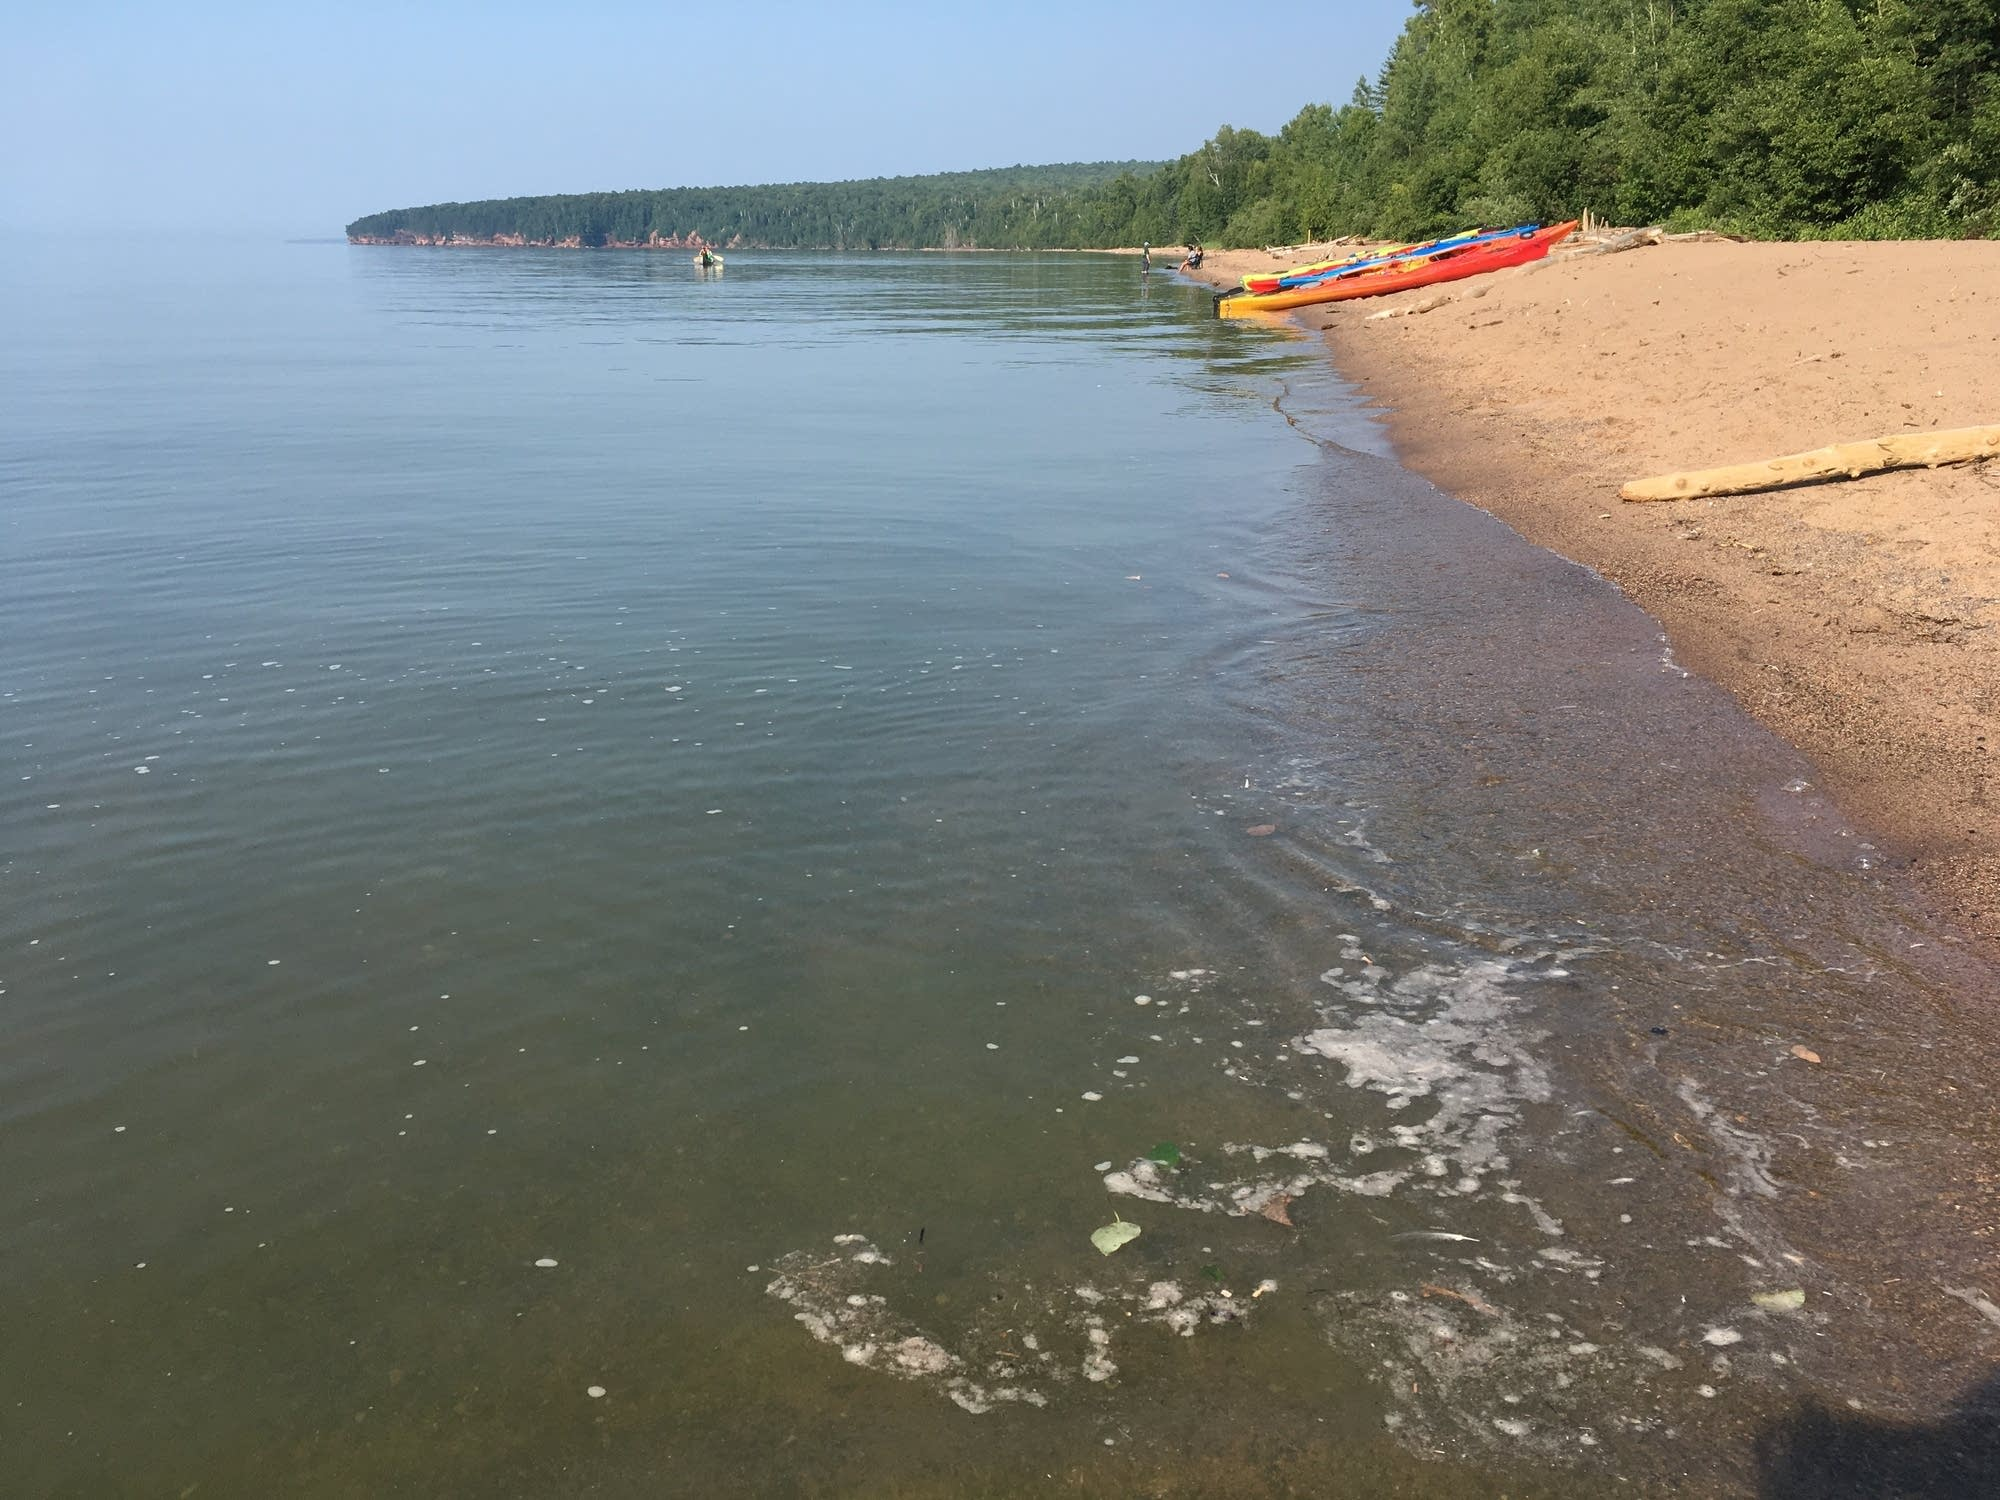 The blooms only started appearing in Lake Superior in 2012